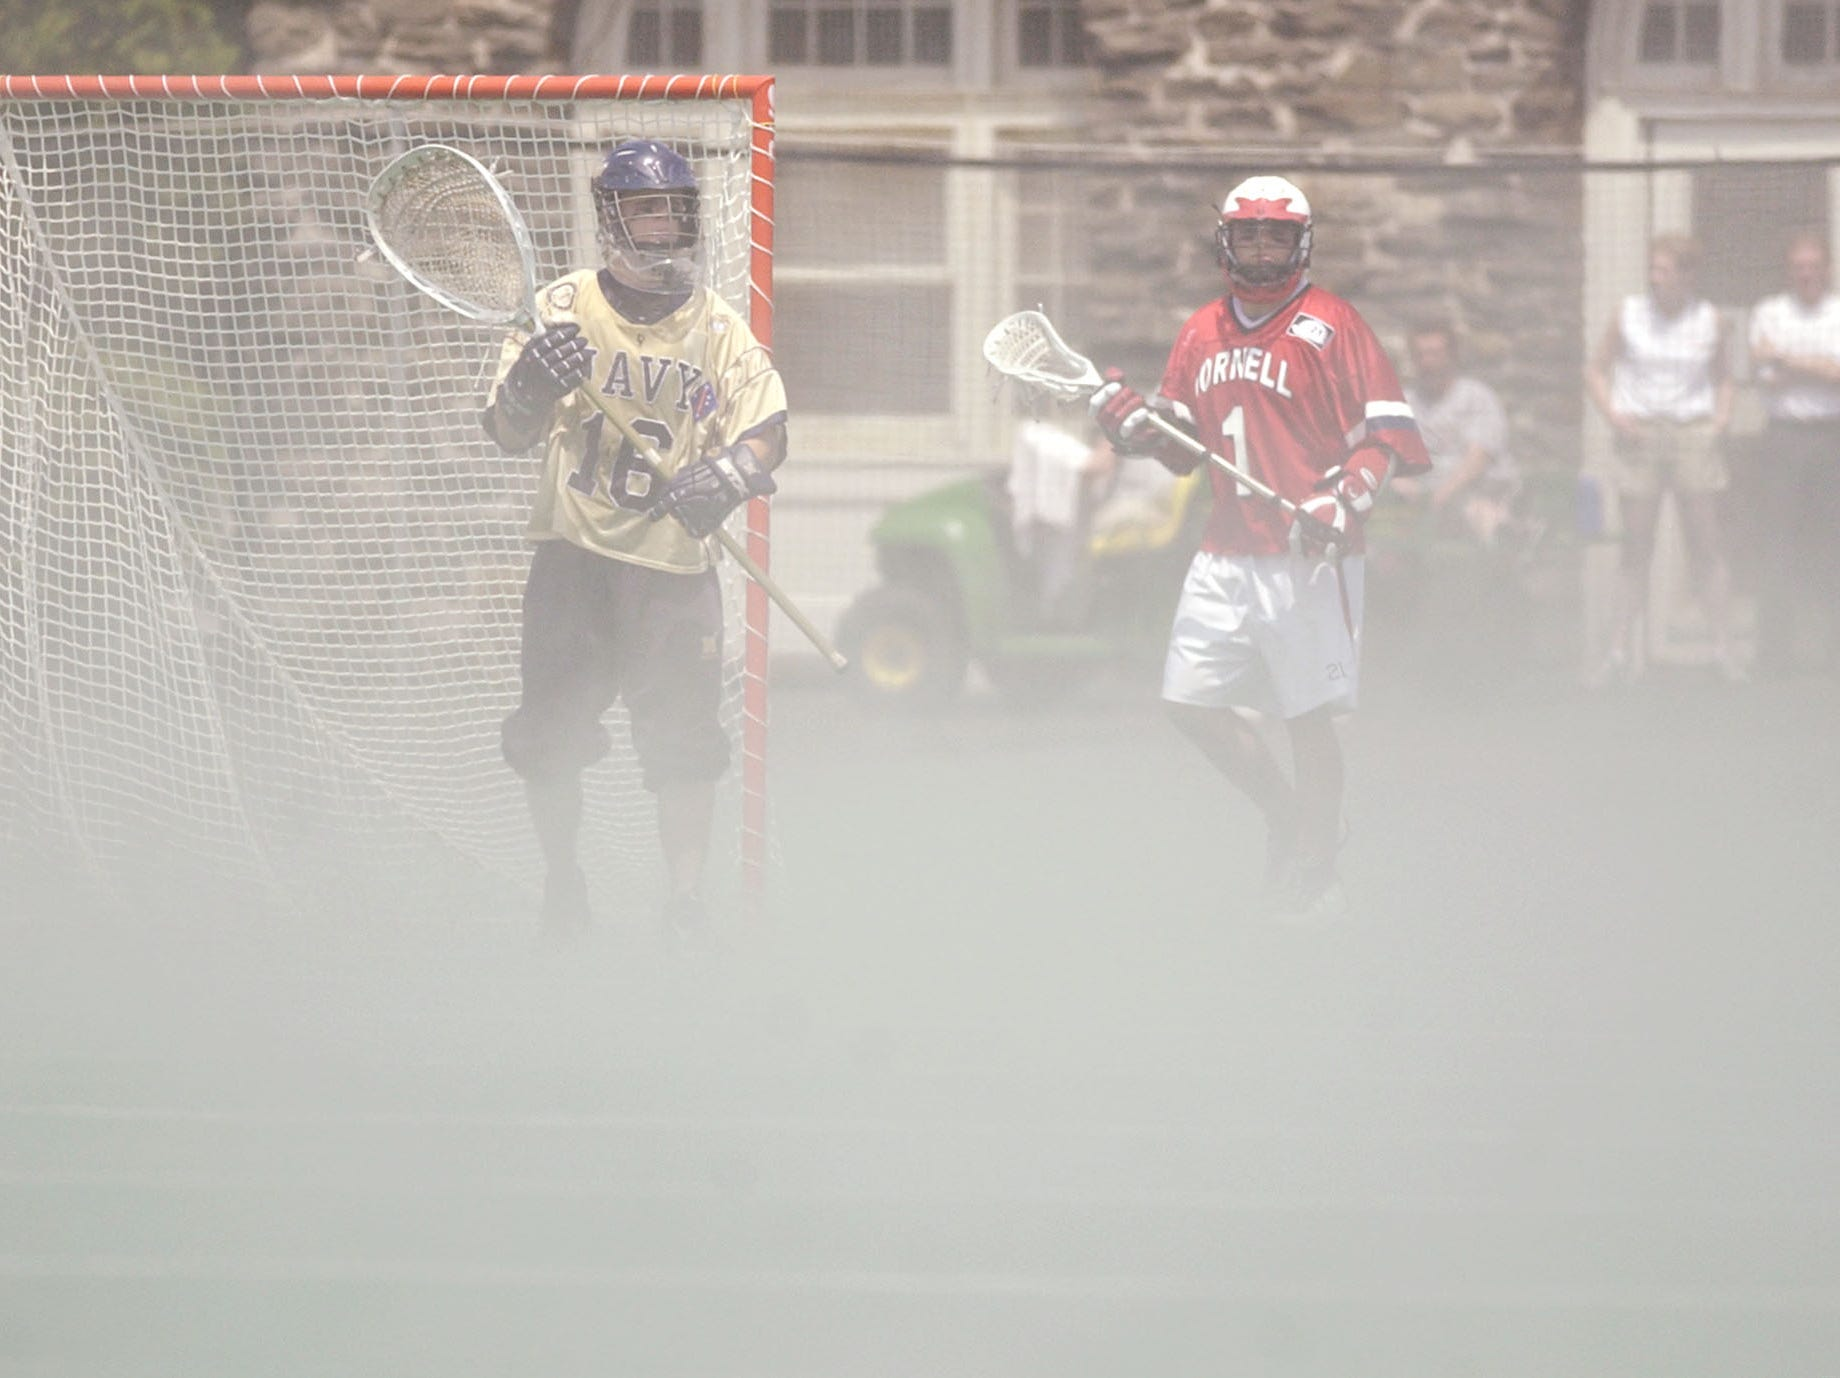 Navy goalie Matt Russell (16) and Cornell's Andrew Collins (1) watch the action as vapor rises from the field during the second quarter of the  NCAA Division I lacrosse championship quarterfinals in Ithaca, N.Y., Sunday, May 23, 2004. Navy won 6-5.